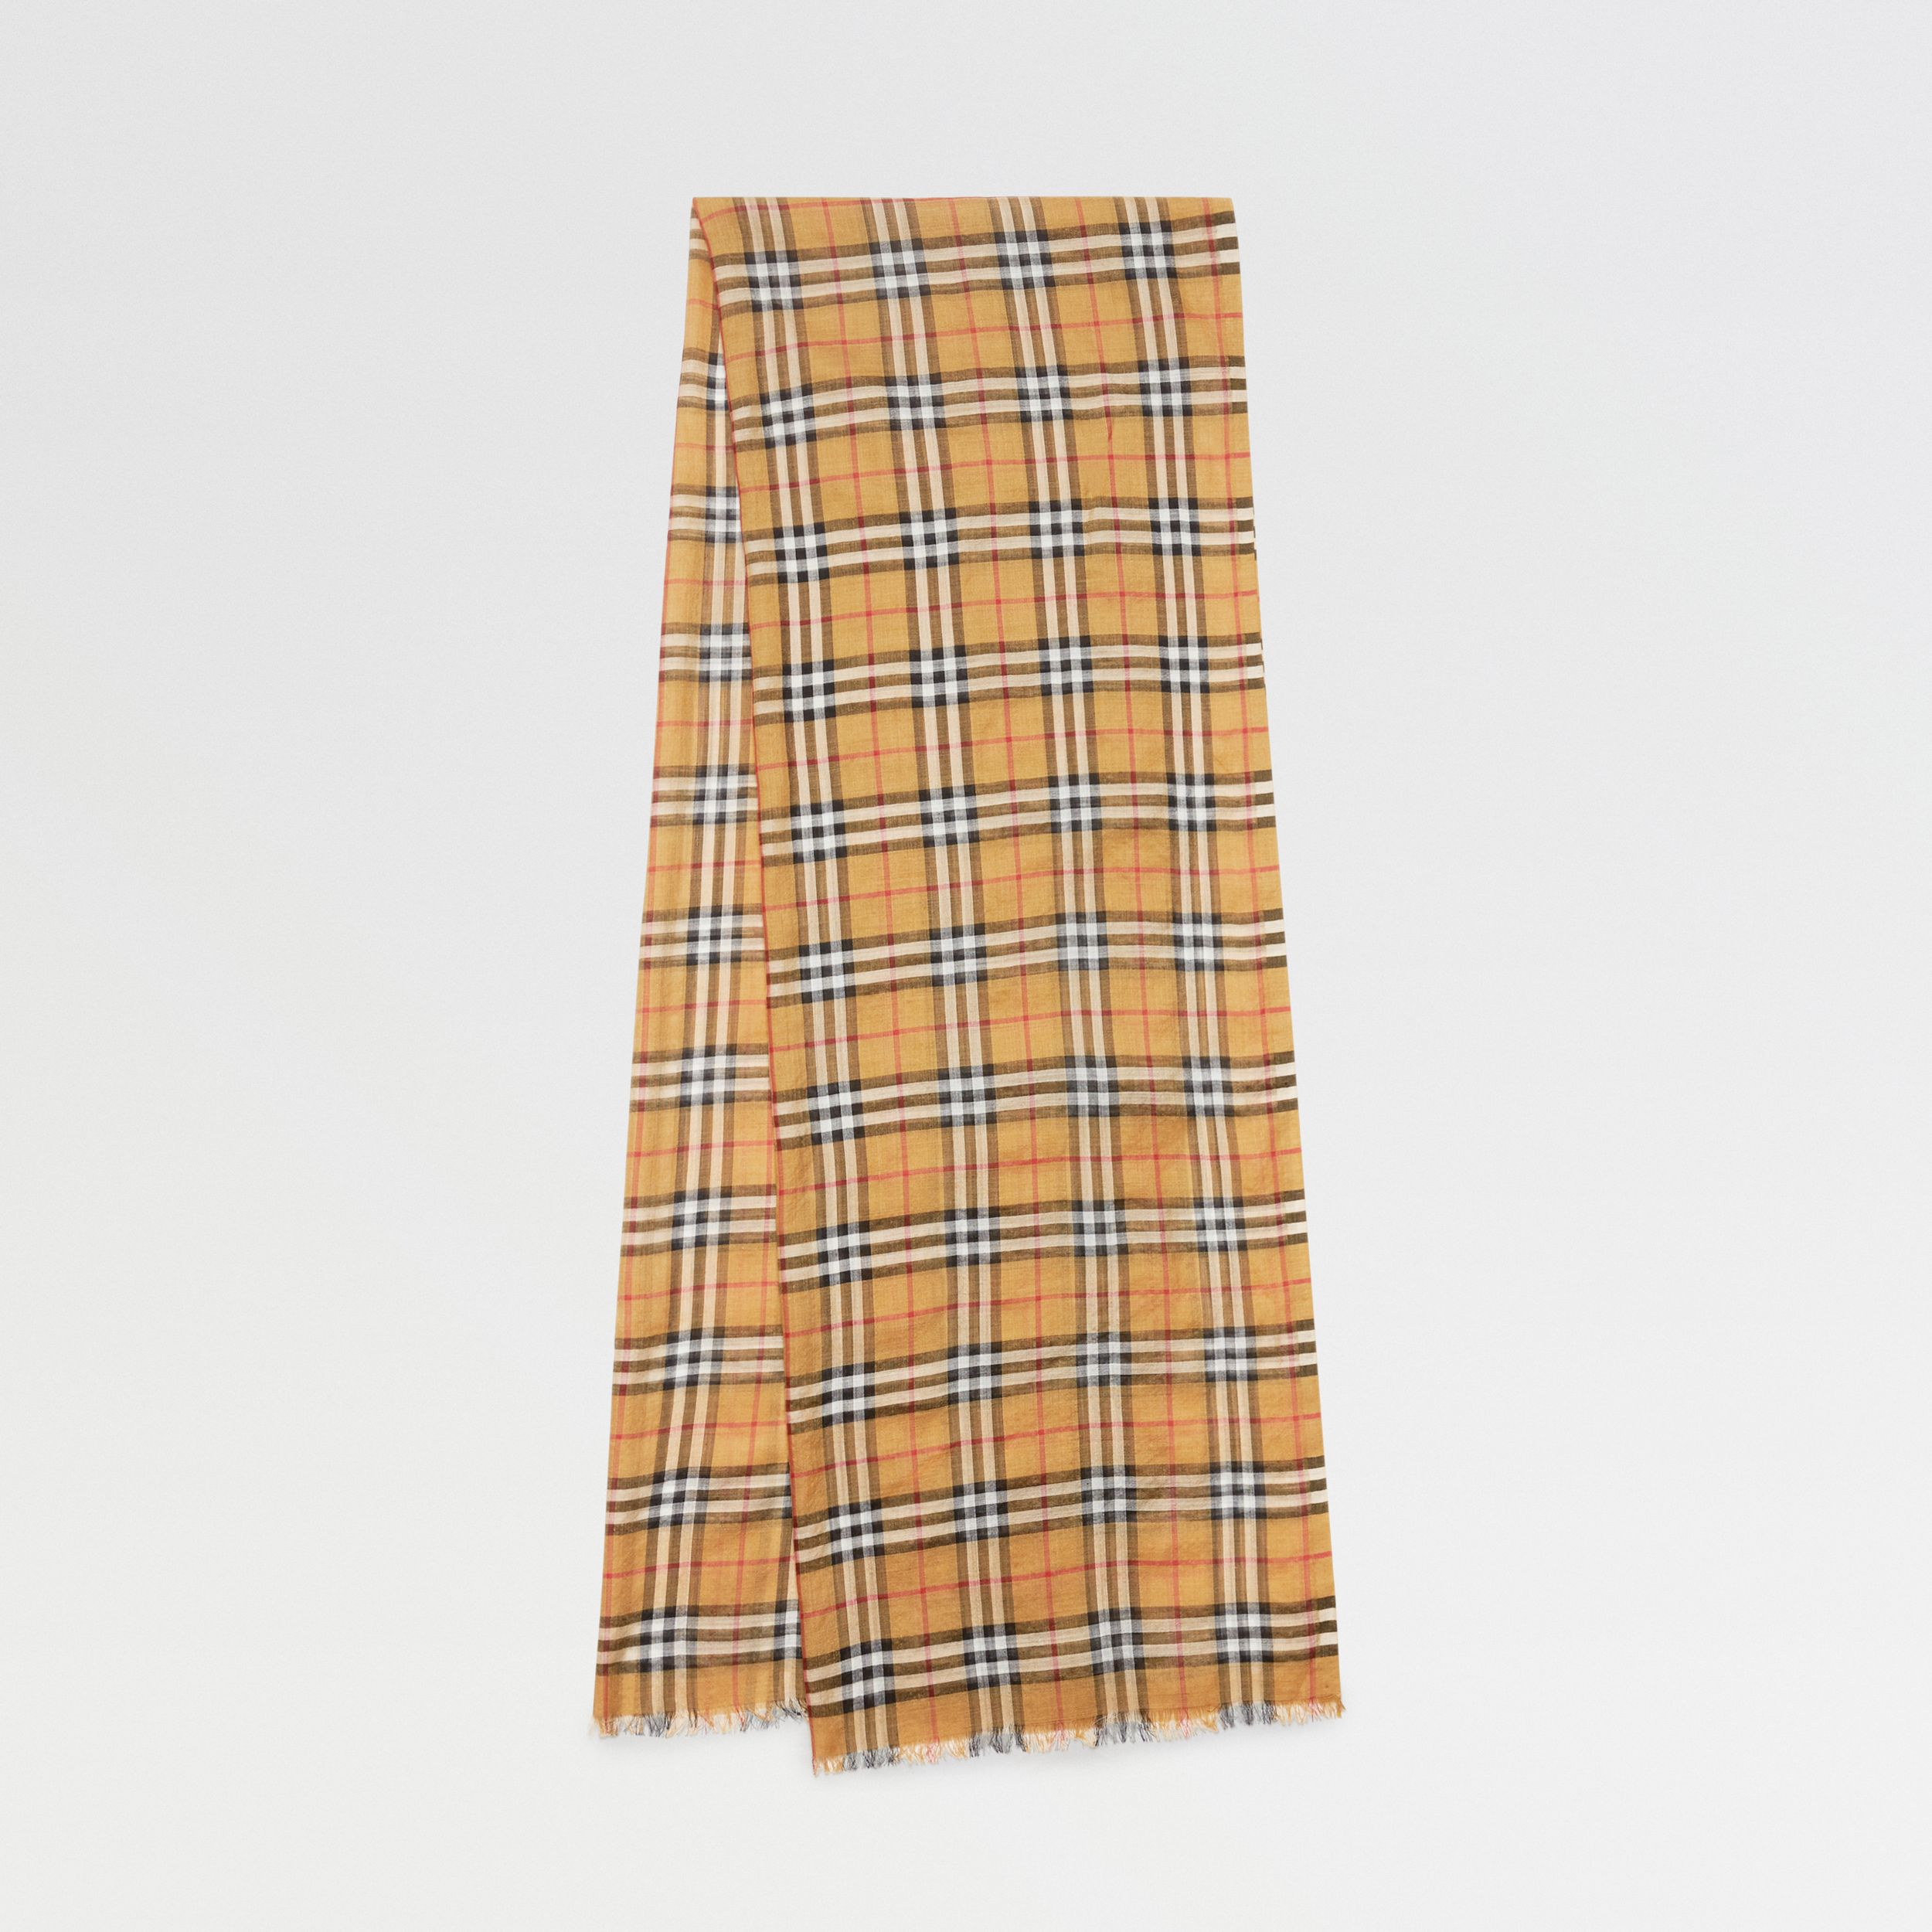 Vintage Check Lightweight Wool Silk Scarf in Antique Yellow | Burberry - 1